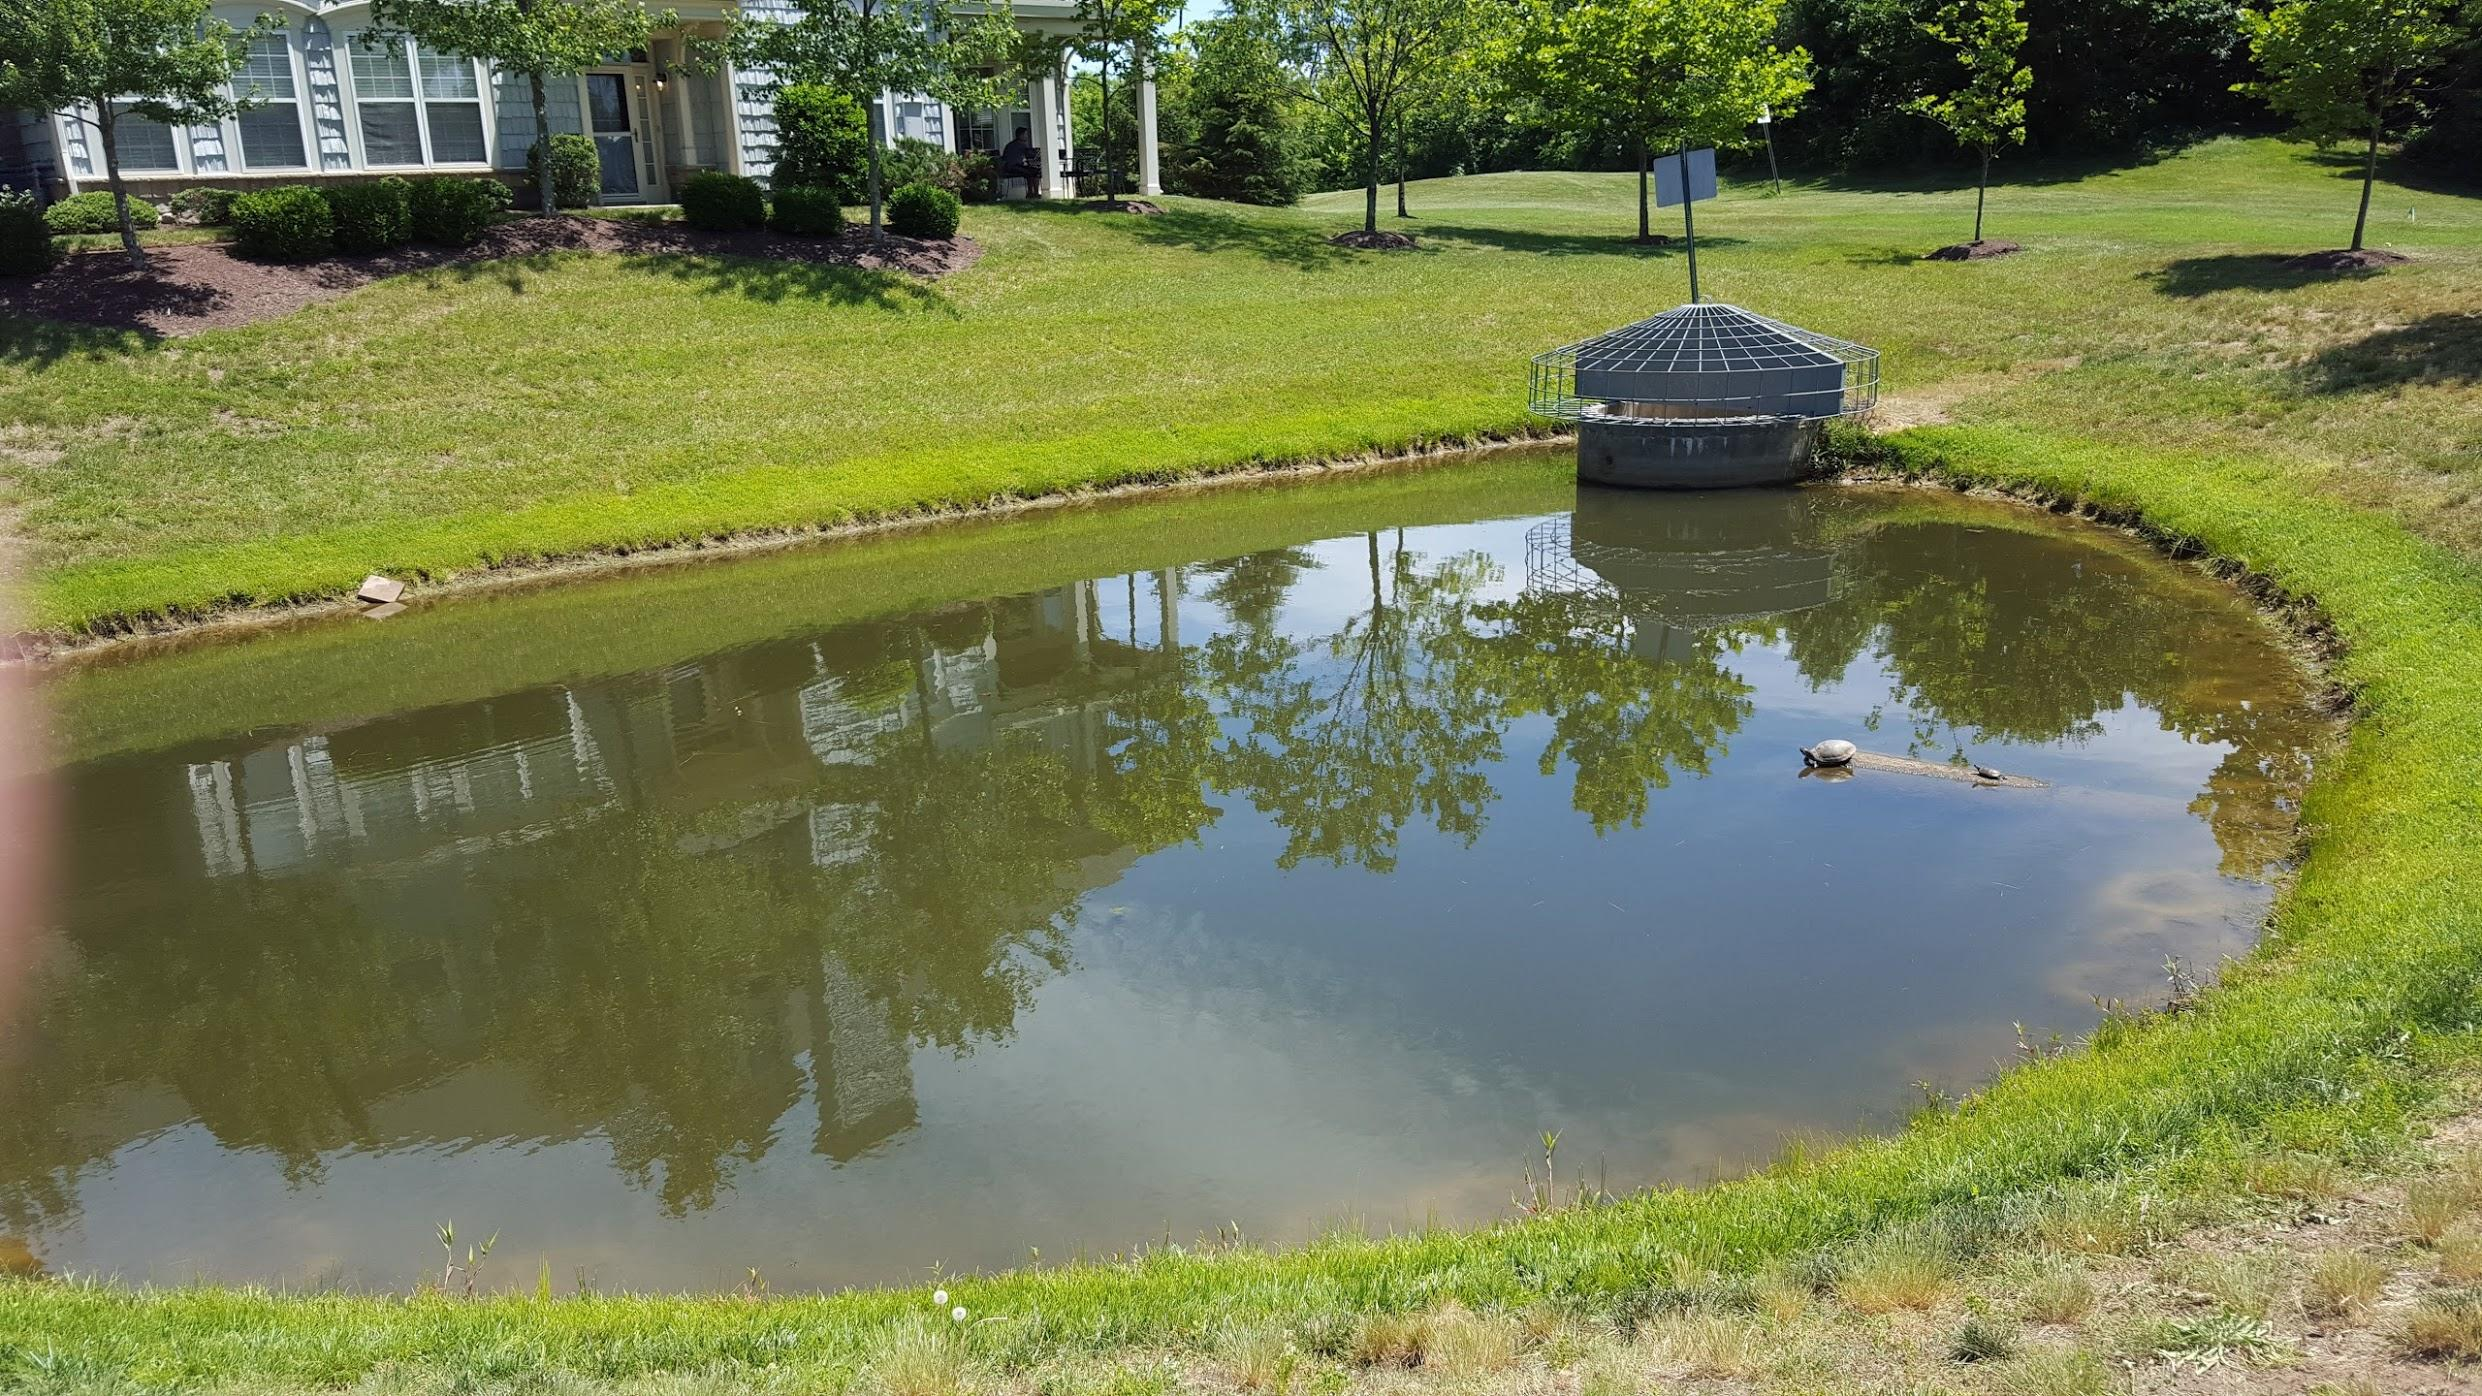 Virginia waters wetlands stormwater pond management for Pond service